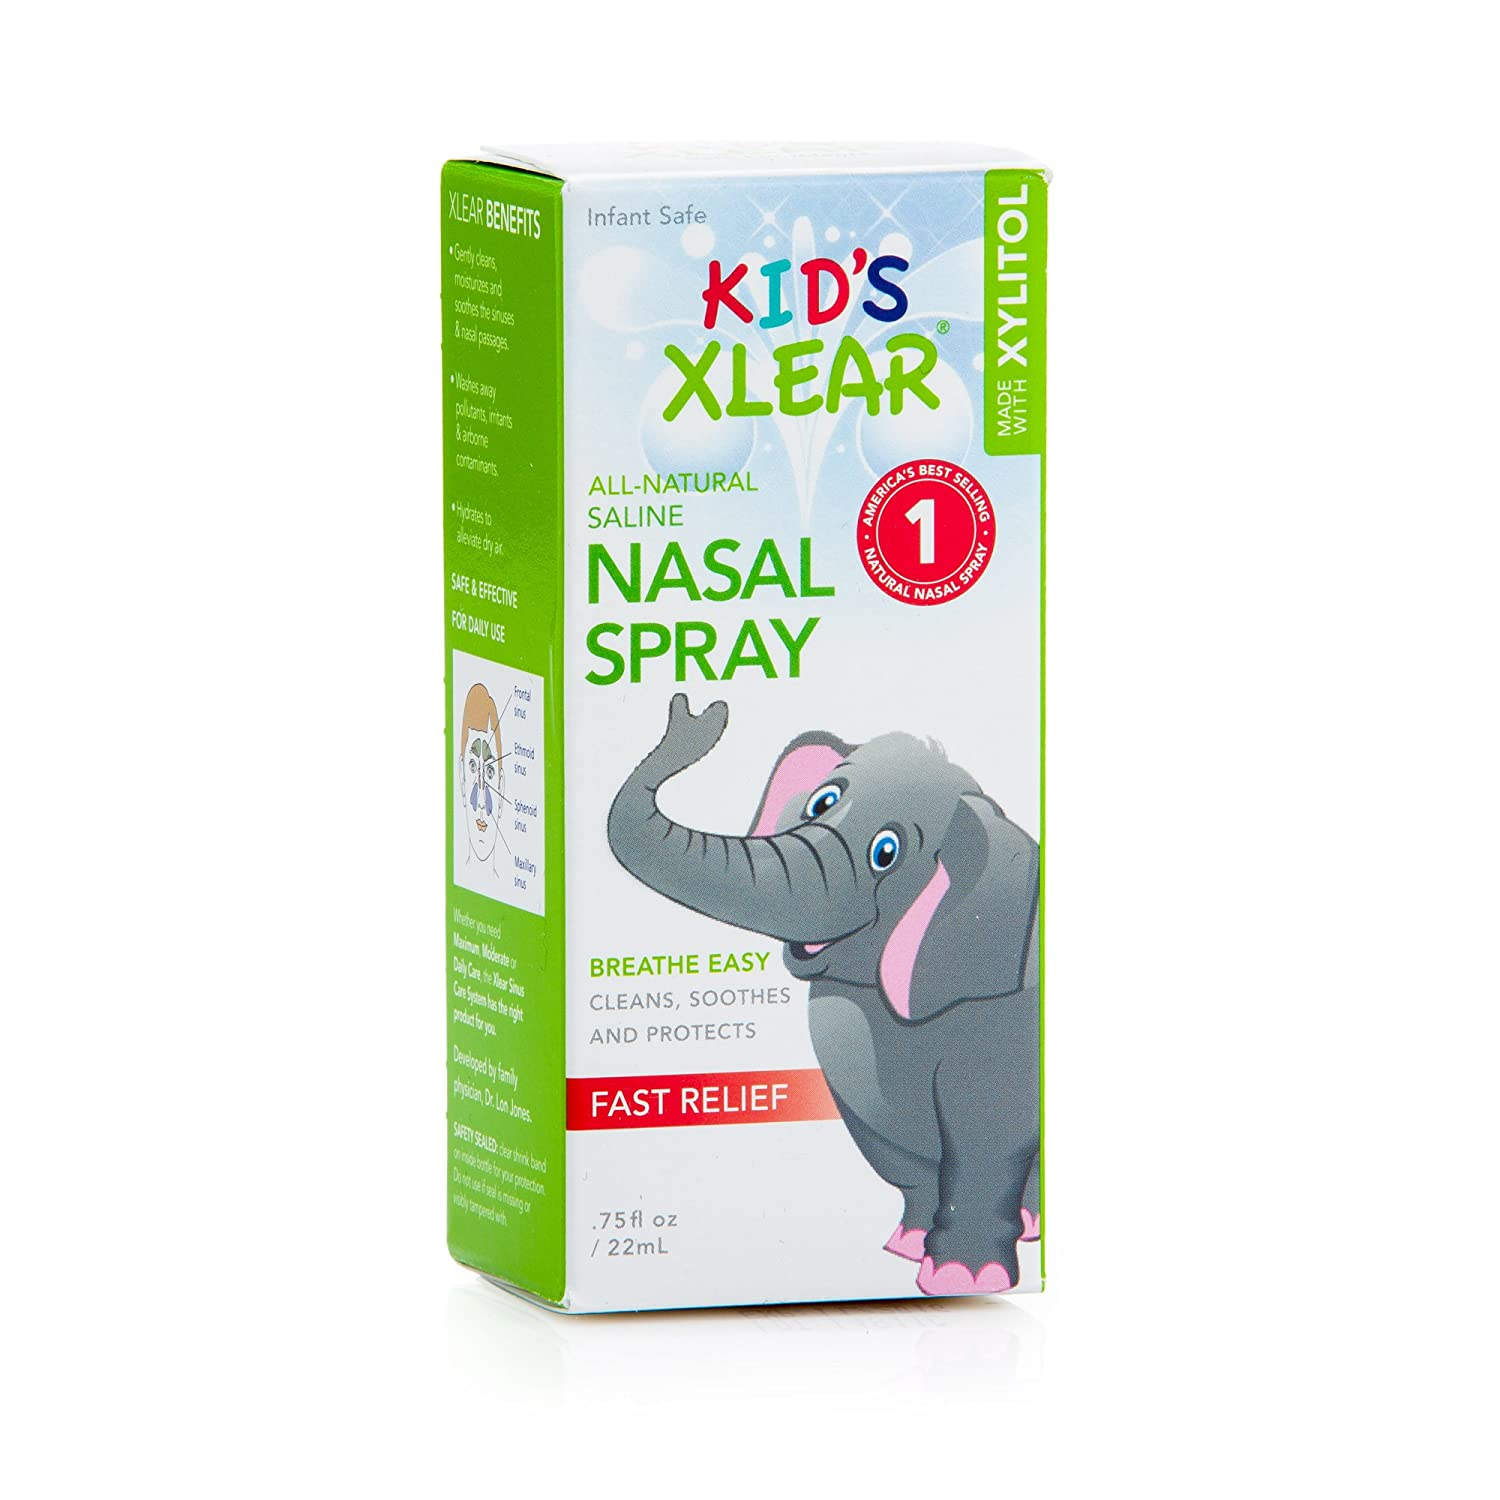 Xlear Kid's Sinus Care Nasal Spray, .75 Fl Oz